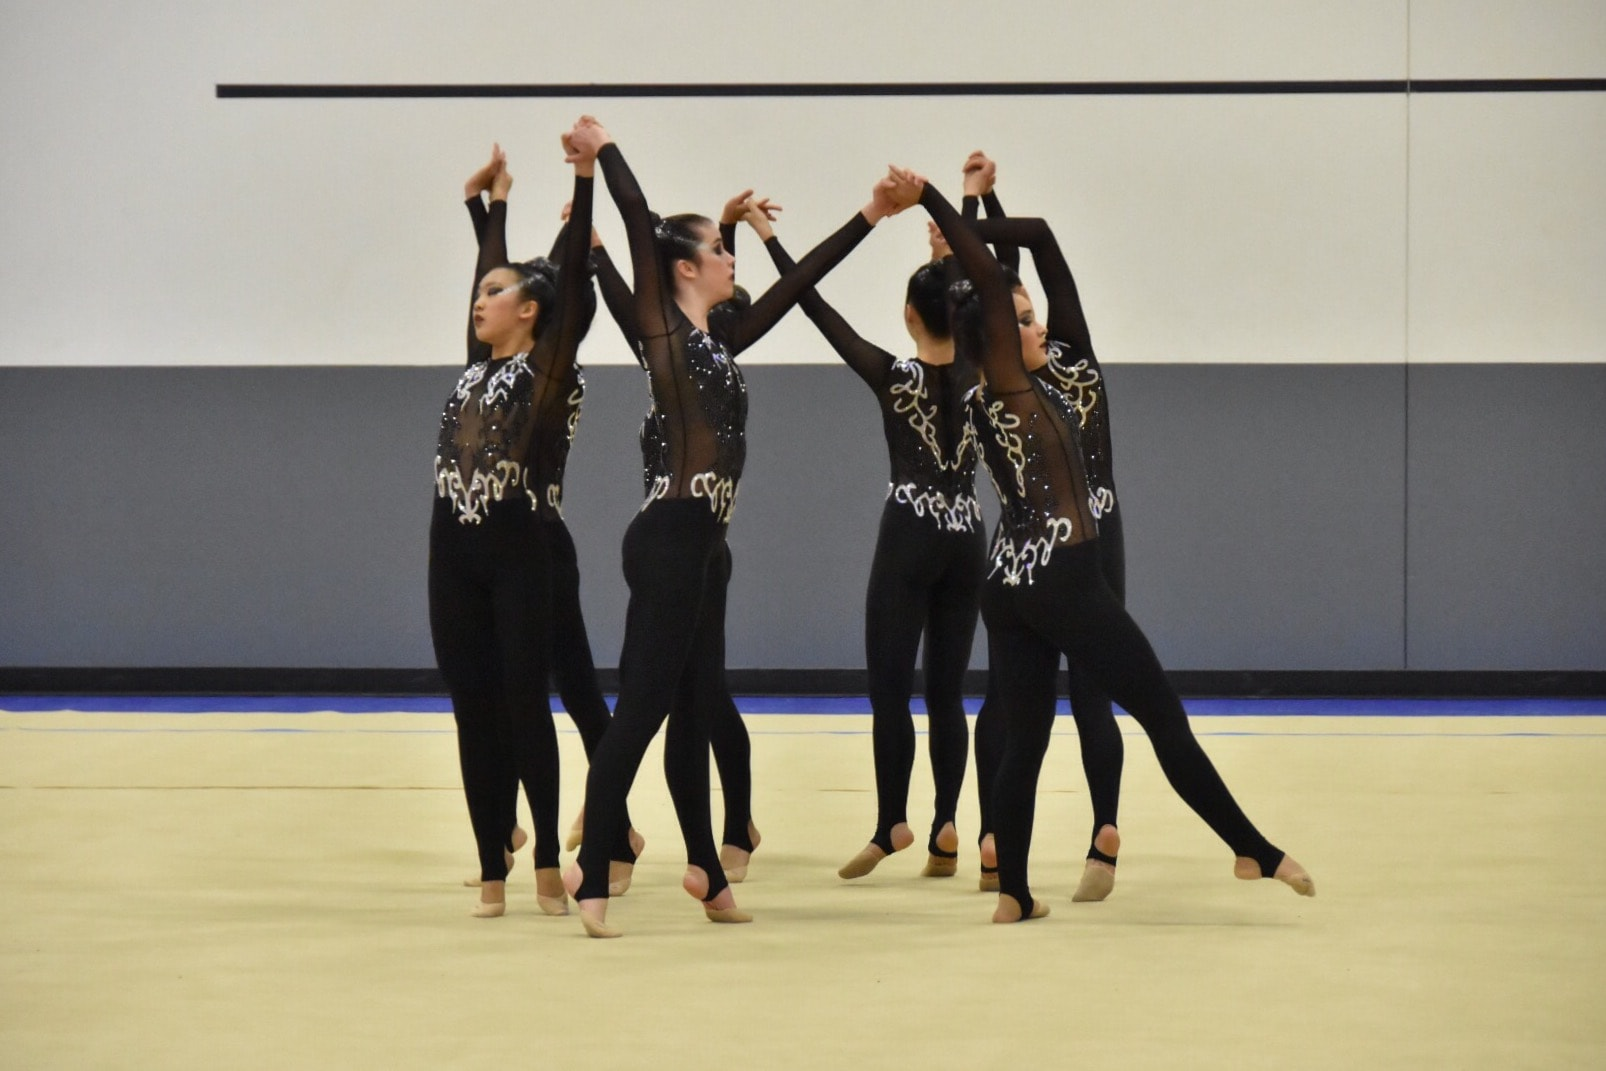 aesthetic group gymnastics usa